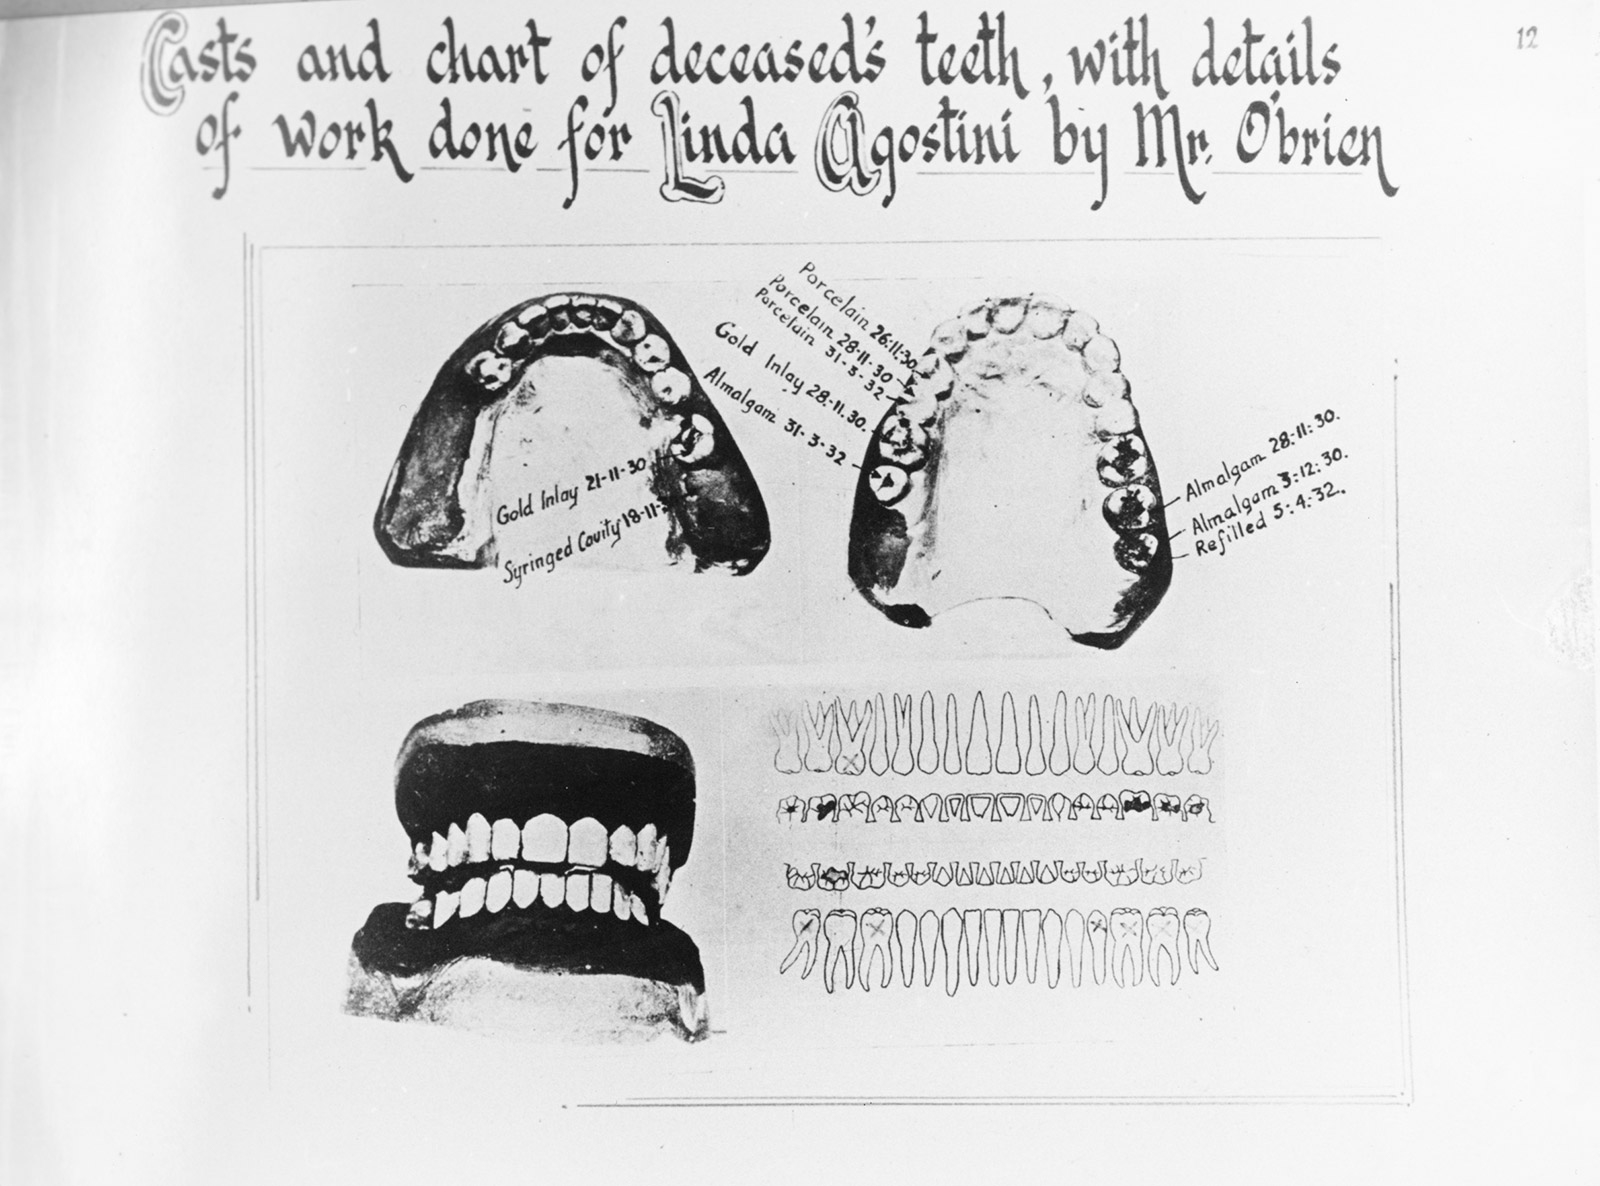 Images of teeth